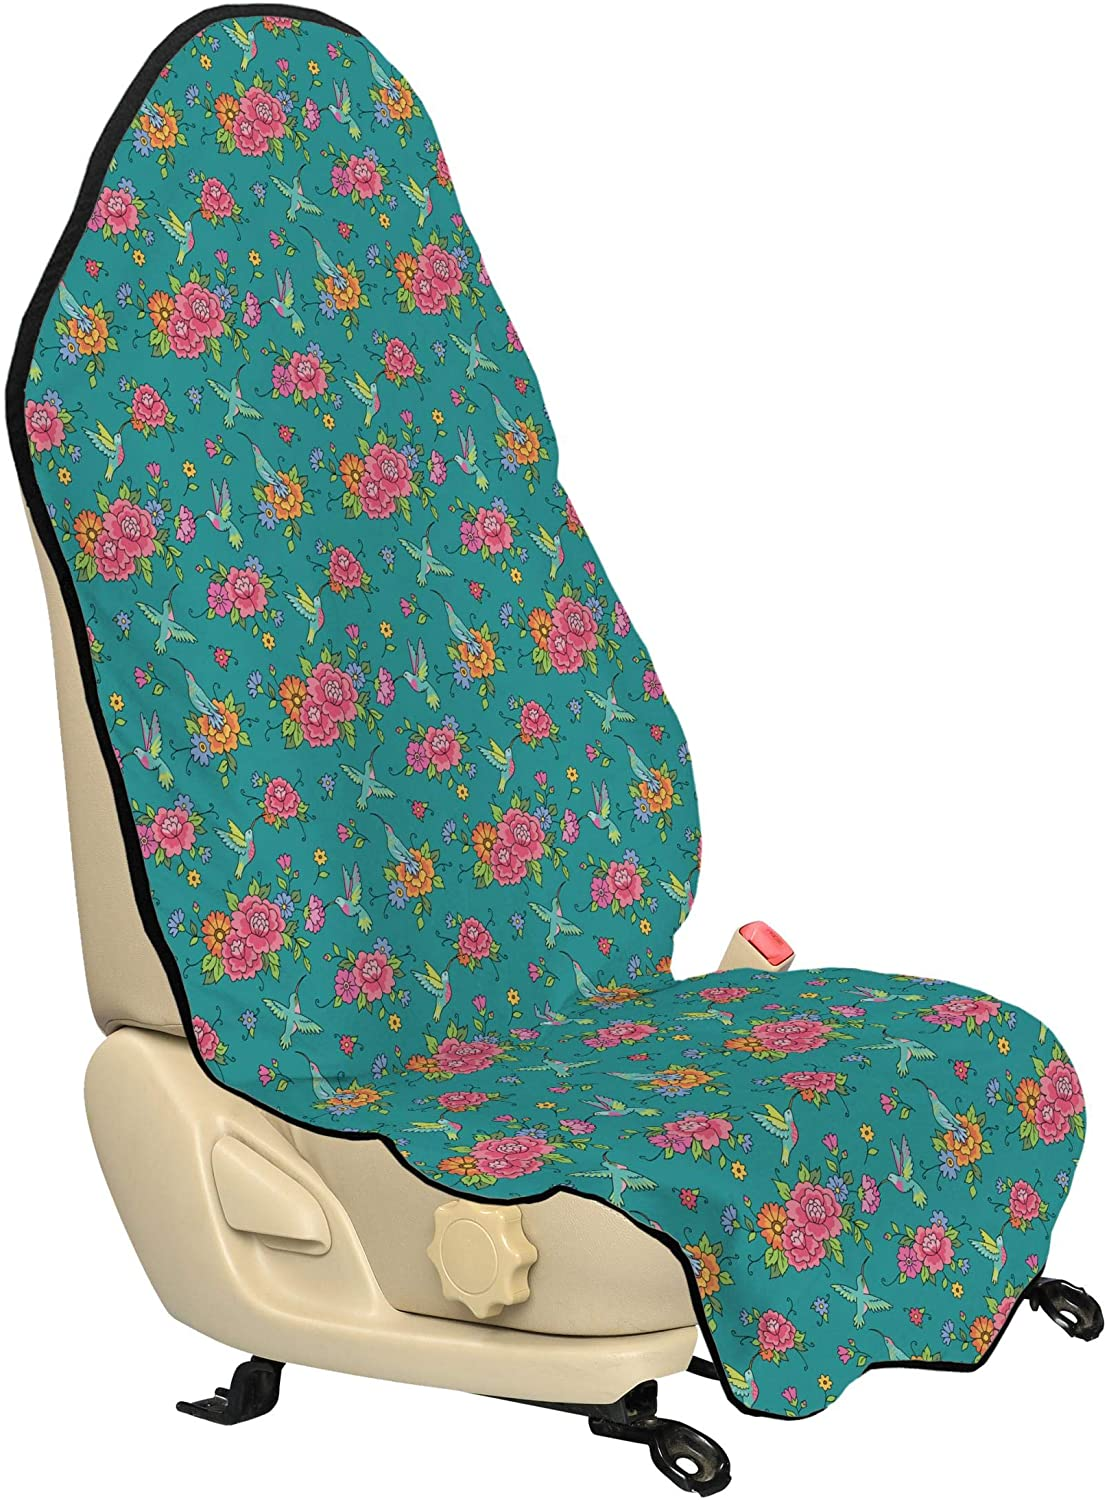 Lunarable Hummingbirds Car Seat Hoodie, Nature Wildlife Inspired Pattern with Colorful Spring Wildflowers and Birds, Car Seat Cover Protector Non Slip Backing Universal Fit, 30